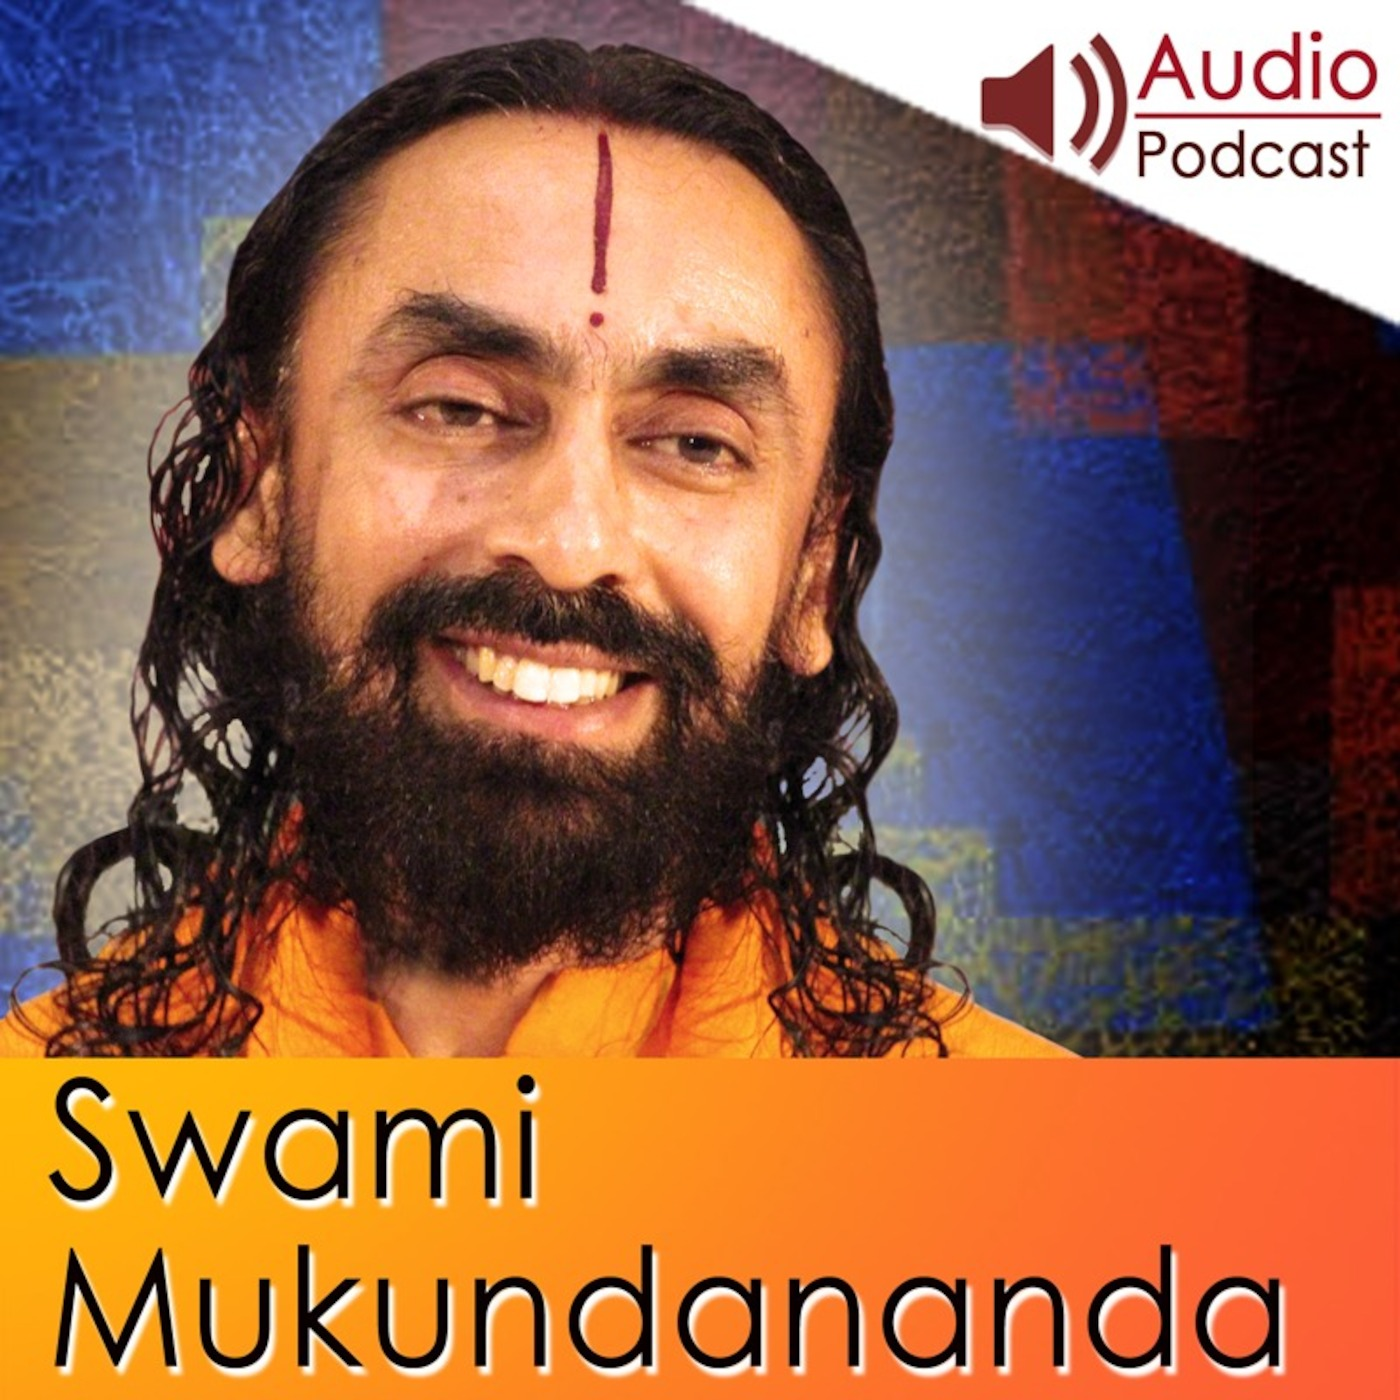 Swami Mukundananda Audio Podcast